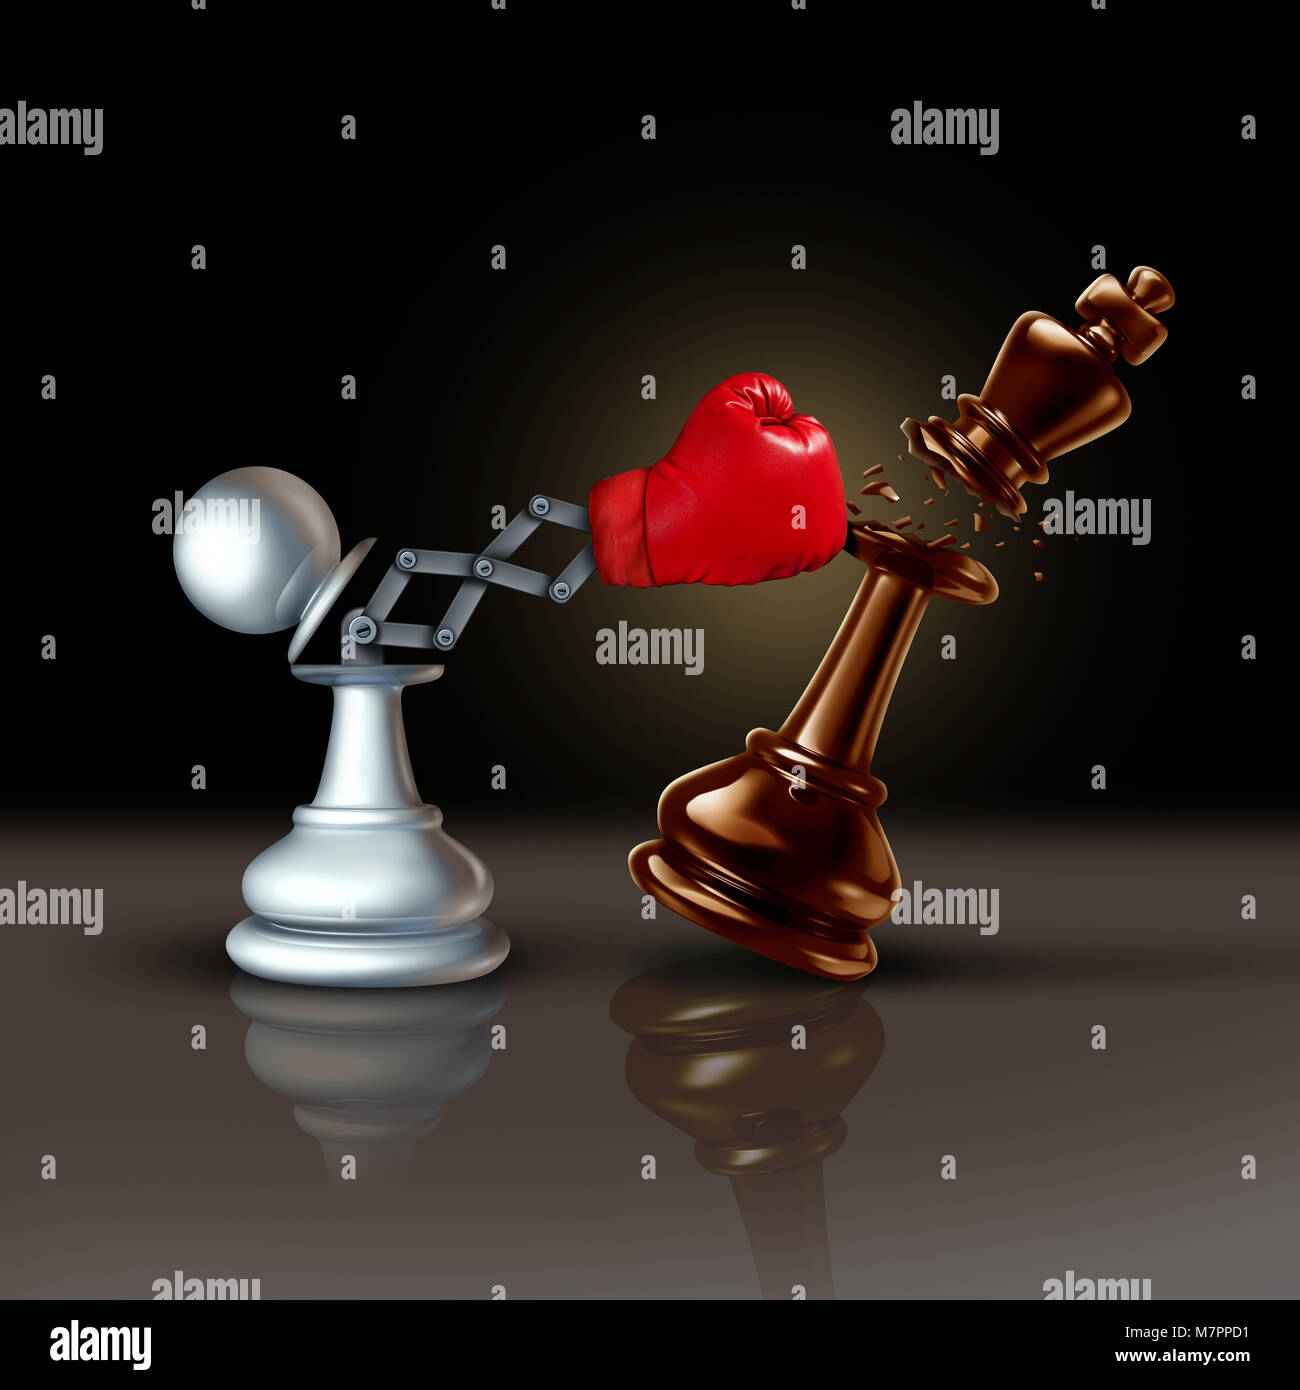 Knock out business concept or knocking and punching symbol as a secret weapon with a chess pawn beating the king - Stock Image